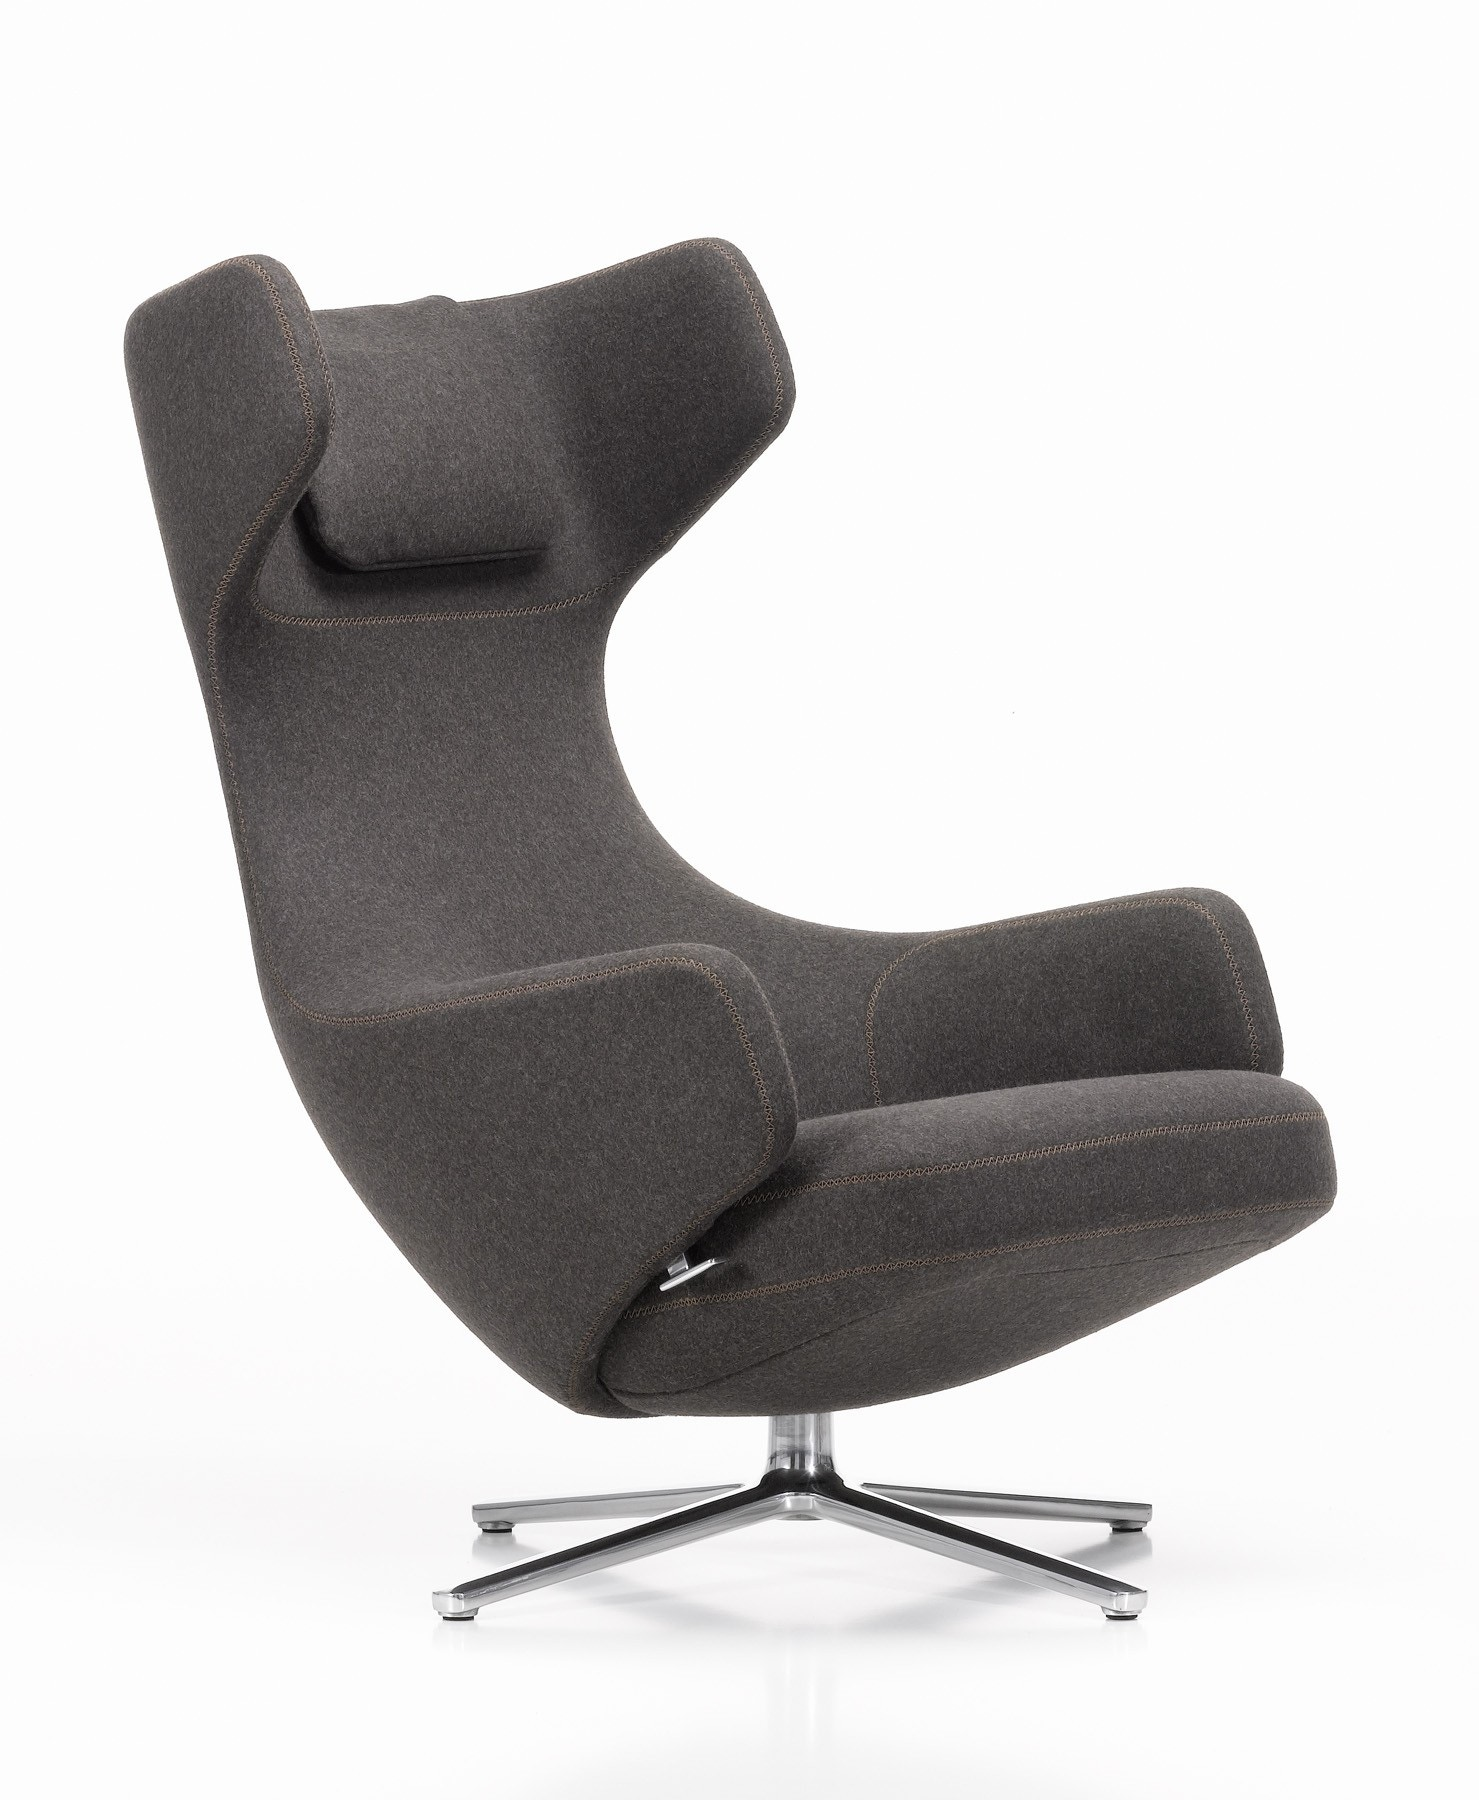 Vitra Grand Repos Lounge Chair   GR Shop Canada